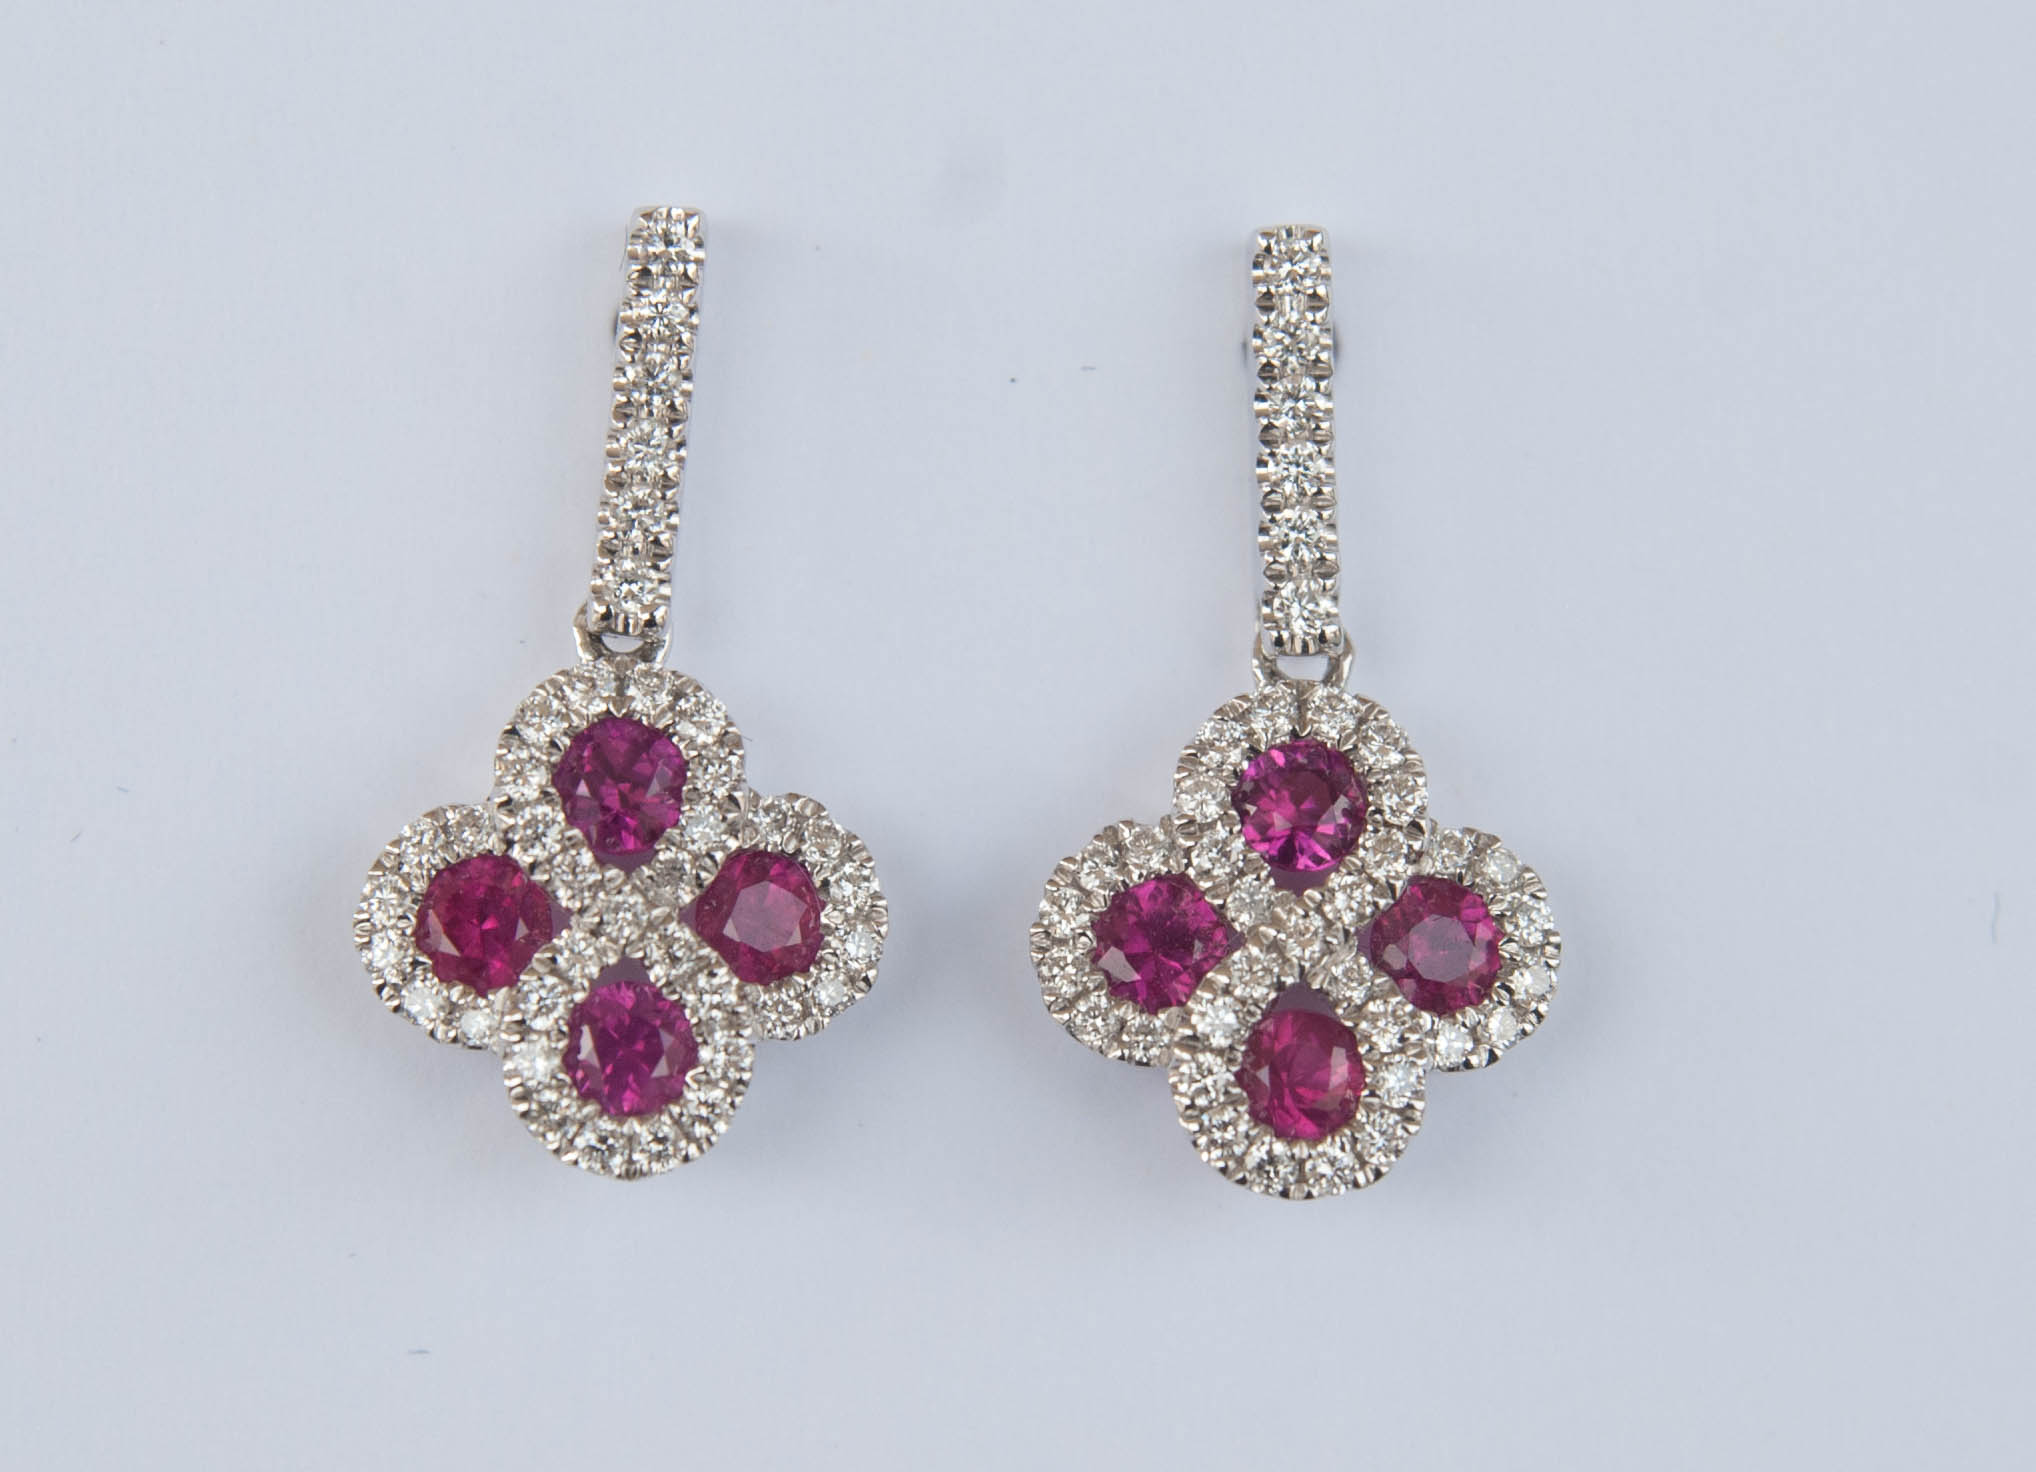 210-2018:  14 Karat White Gold Drop Earrings With 8= Round Rubys And Round Diamonds $1,315.00